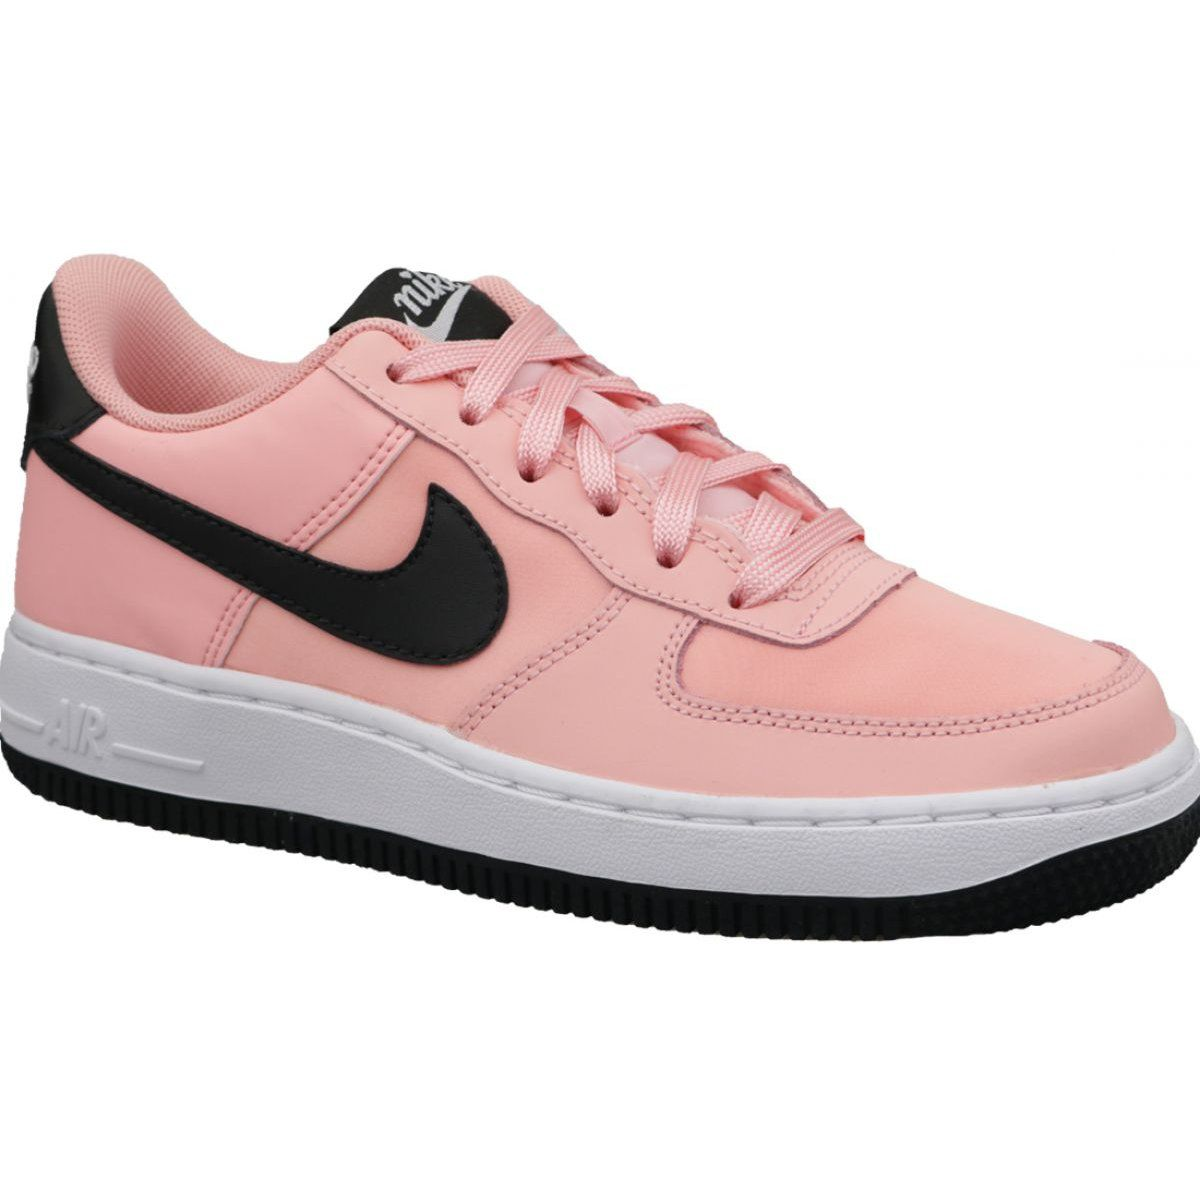 Details about Young Girls Nike Air Force 1 VDAY GS Trainers Shoes Pink Black BQ6980 600